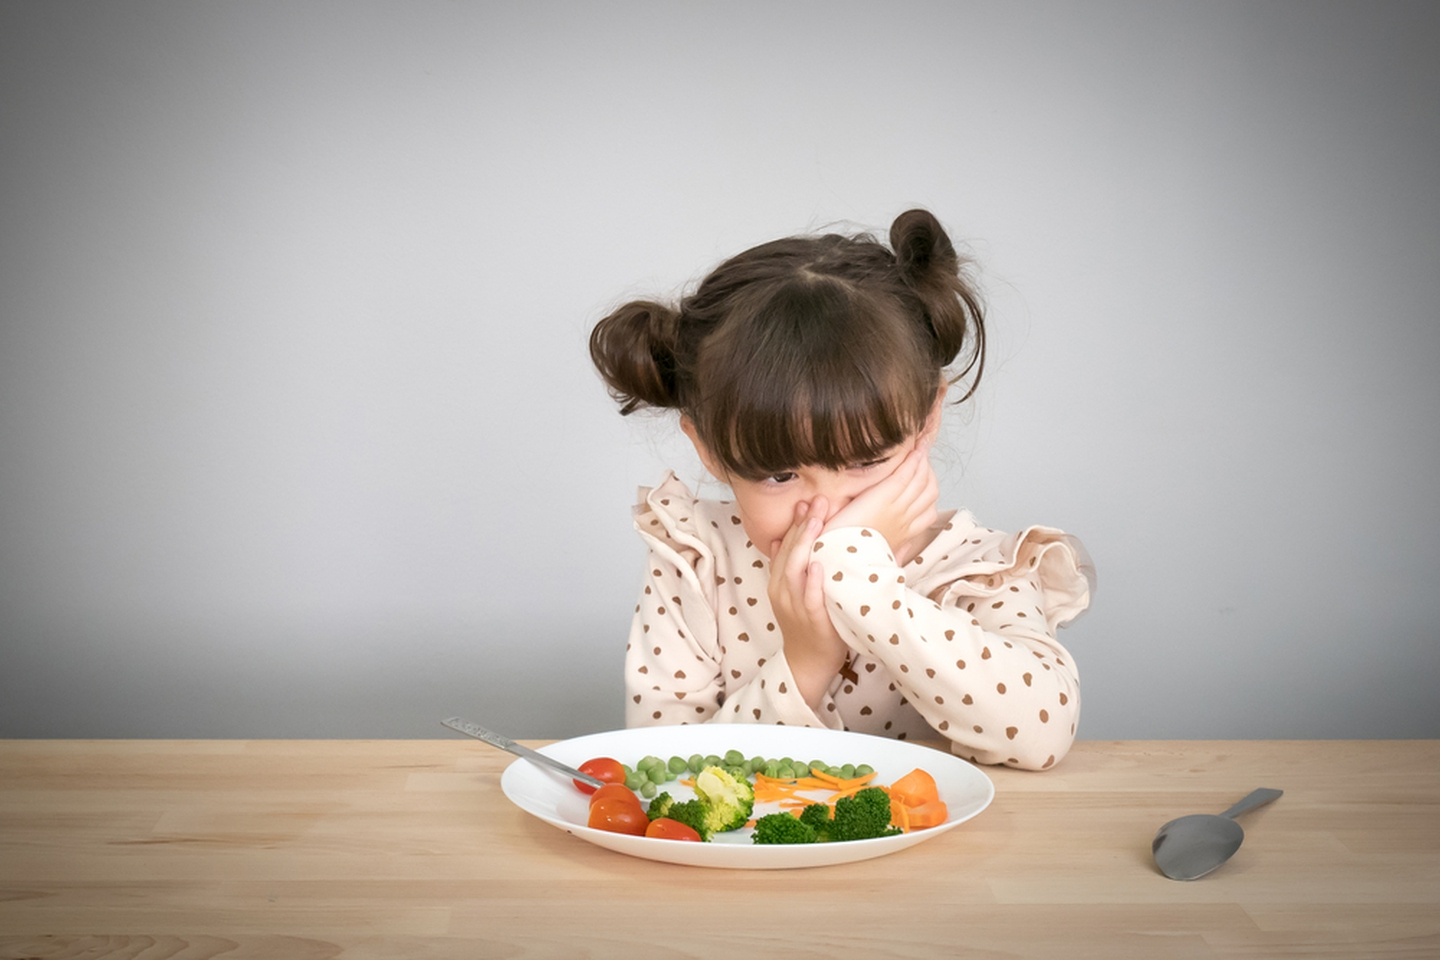 Does Your Child Have Difficulty Eating?